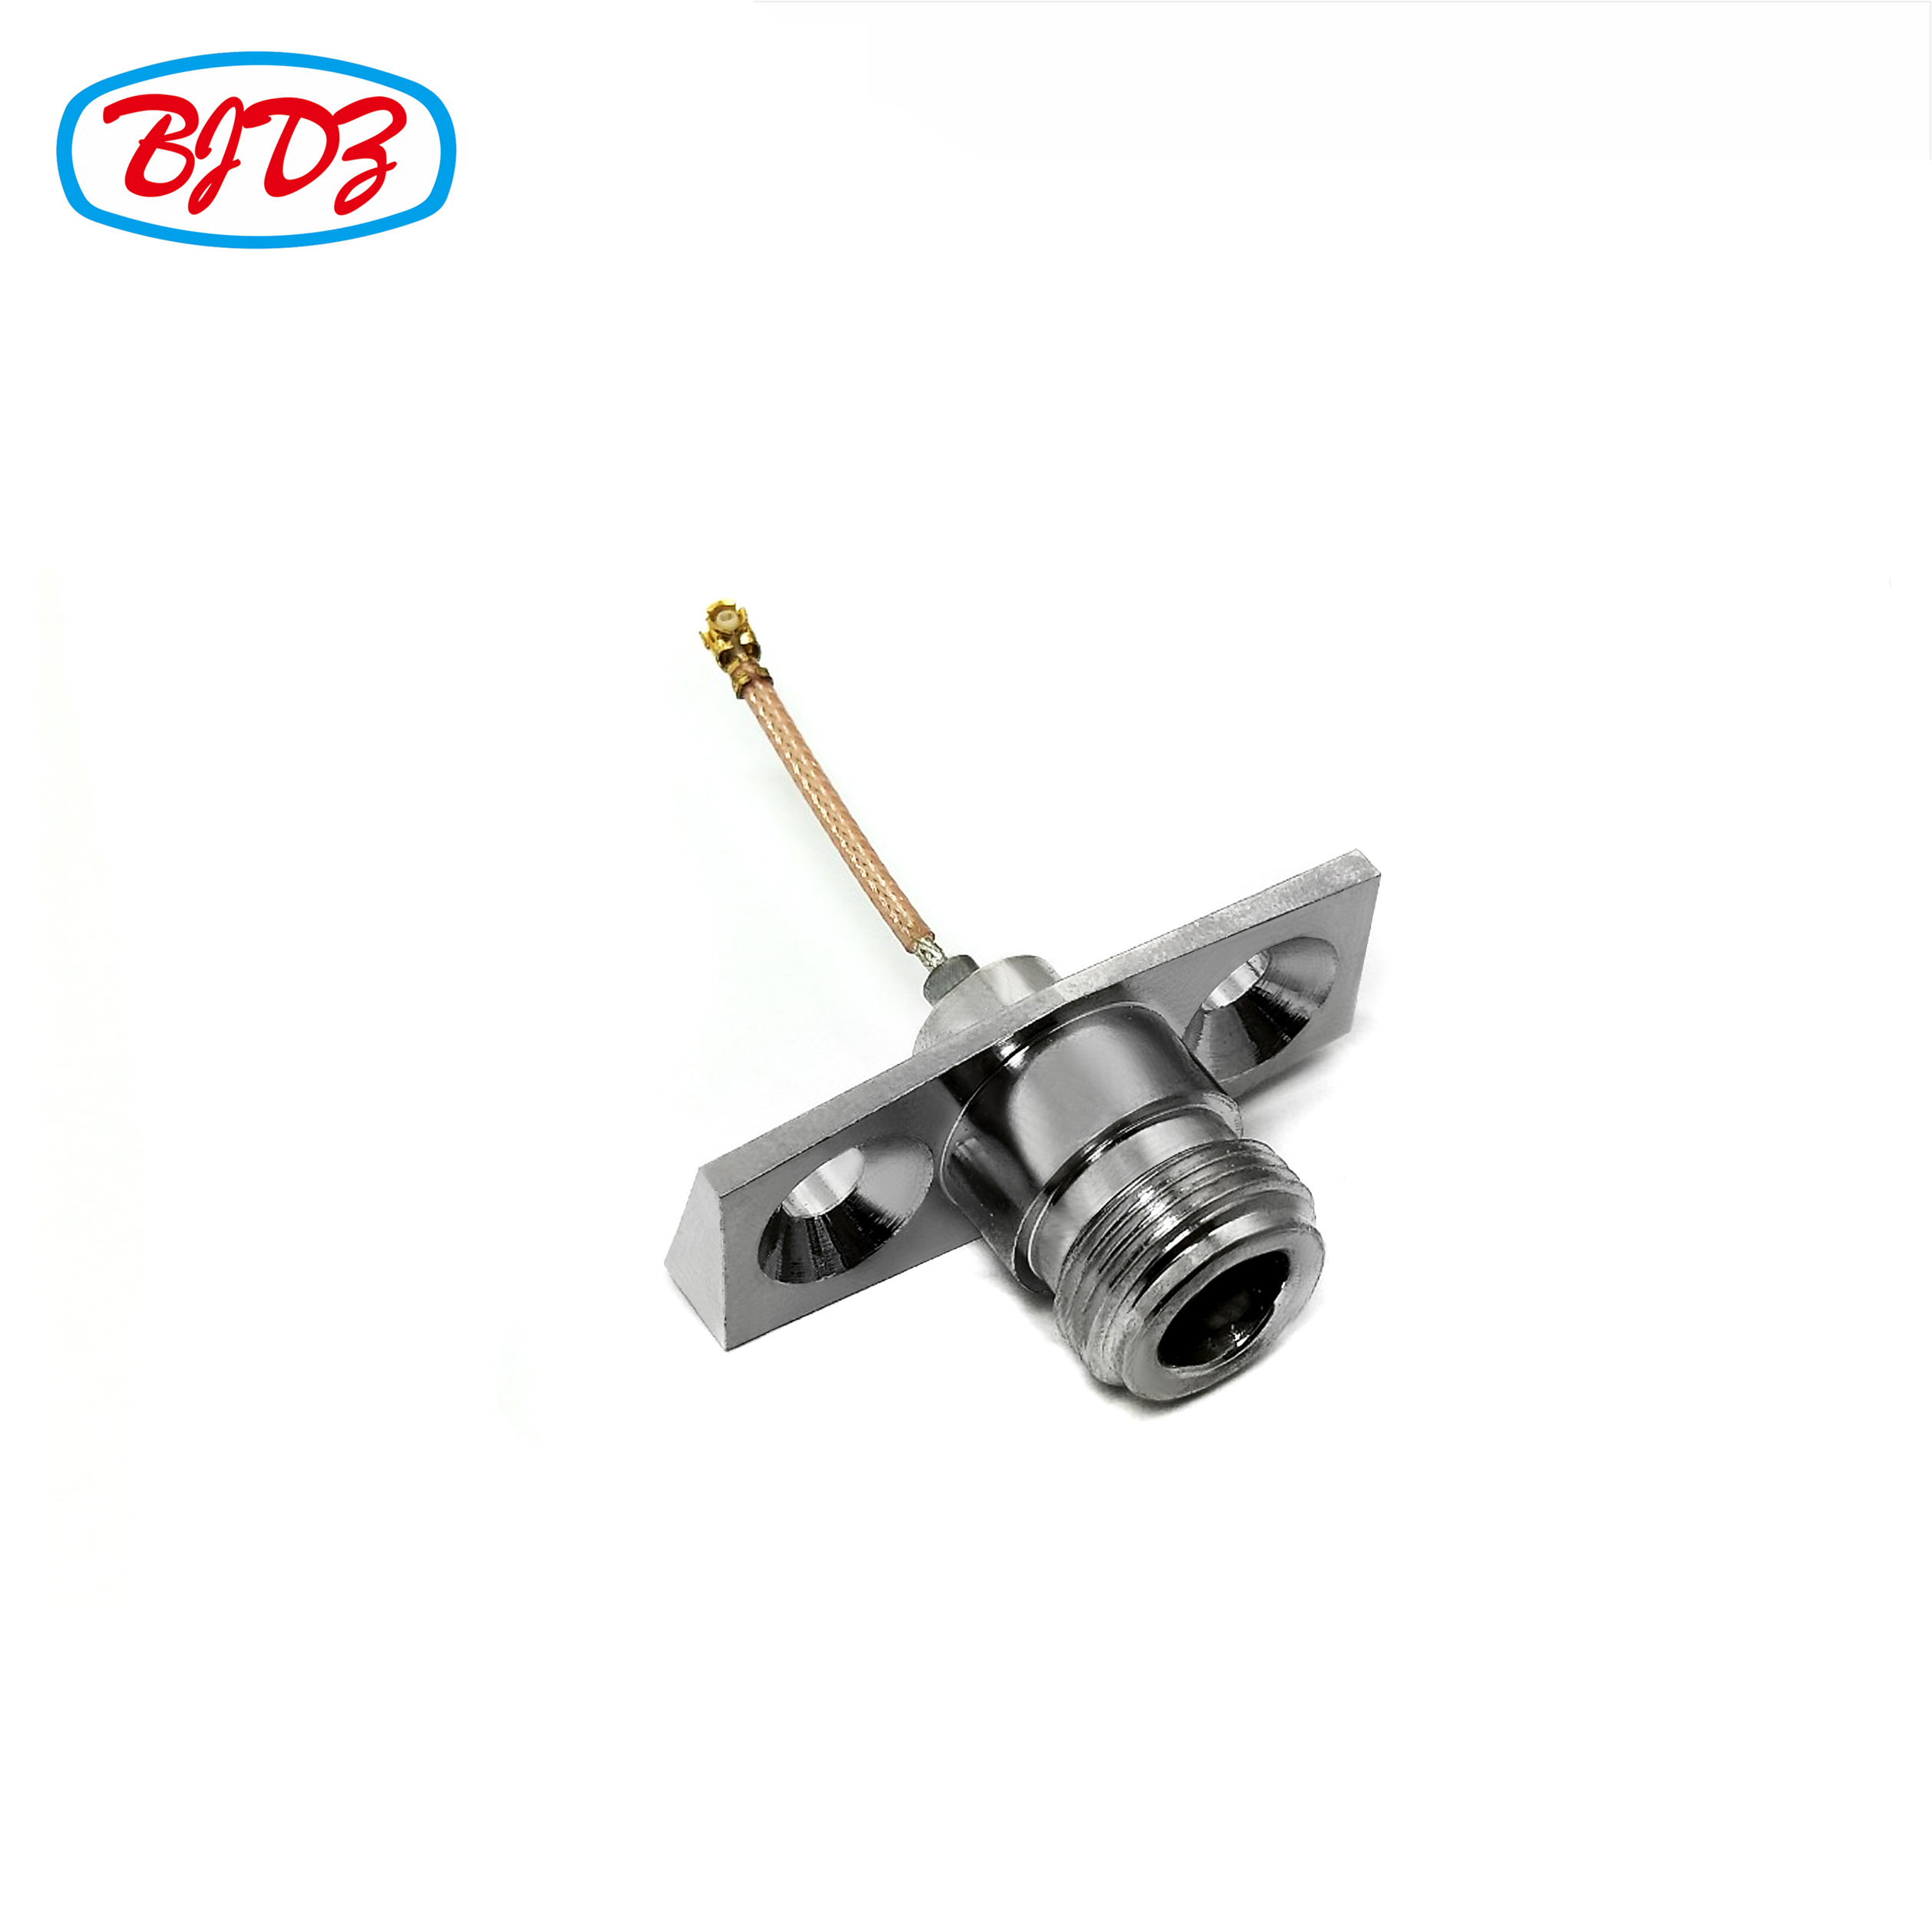 RF coaxial cable kit jack N female flange to IPEX UFL connector with RG178 cable assembly